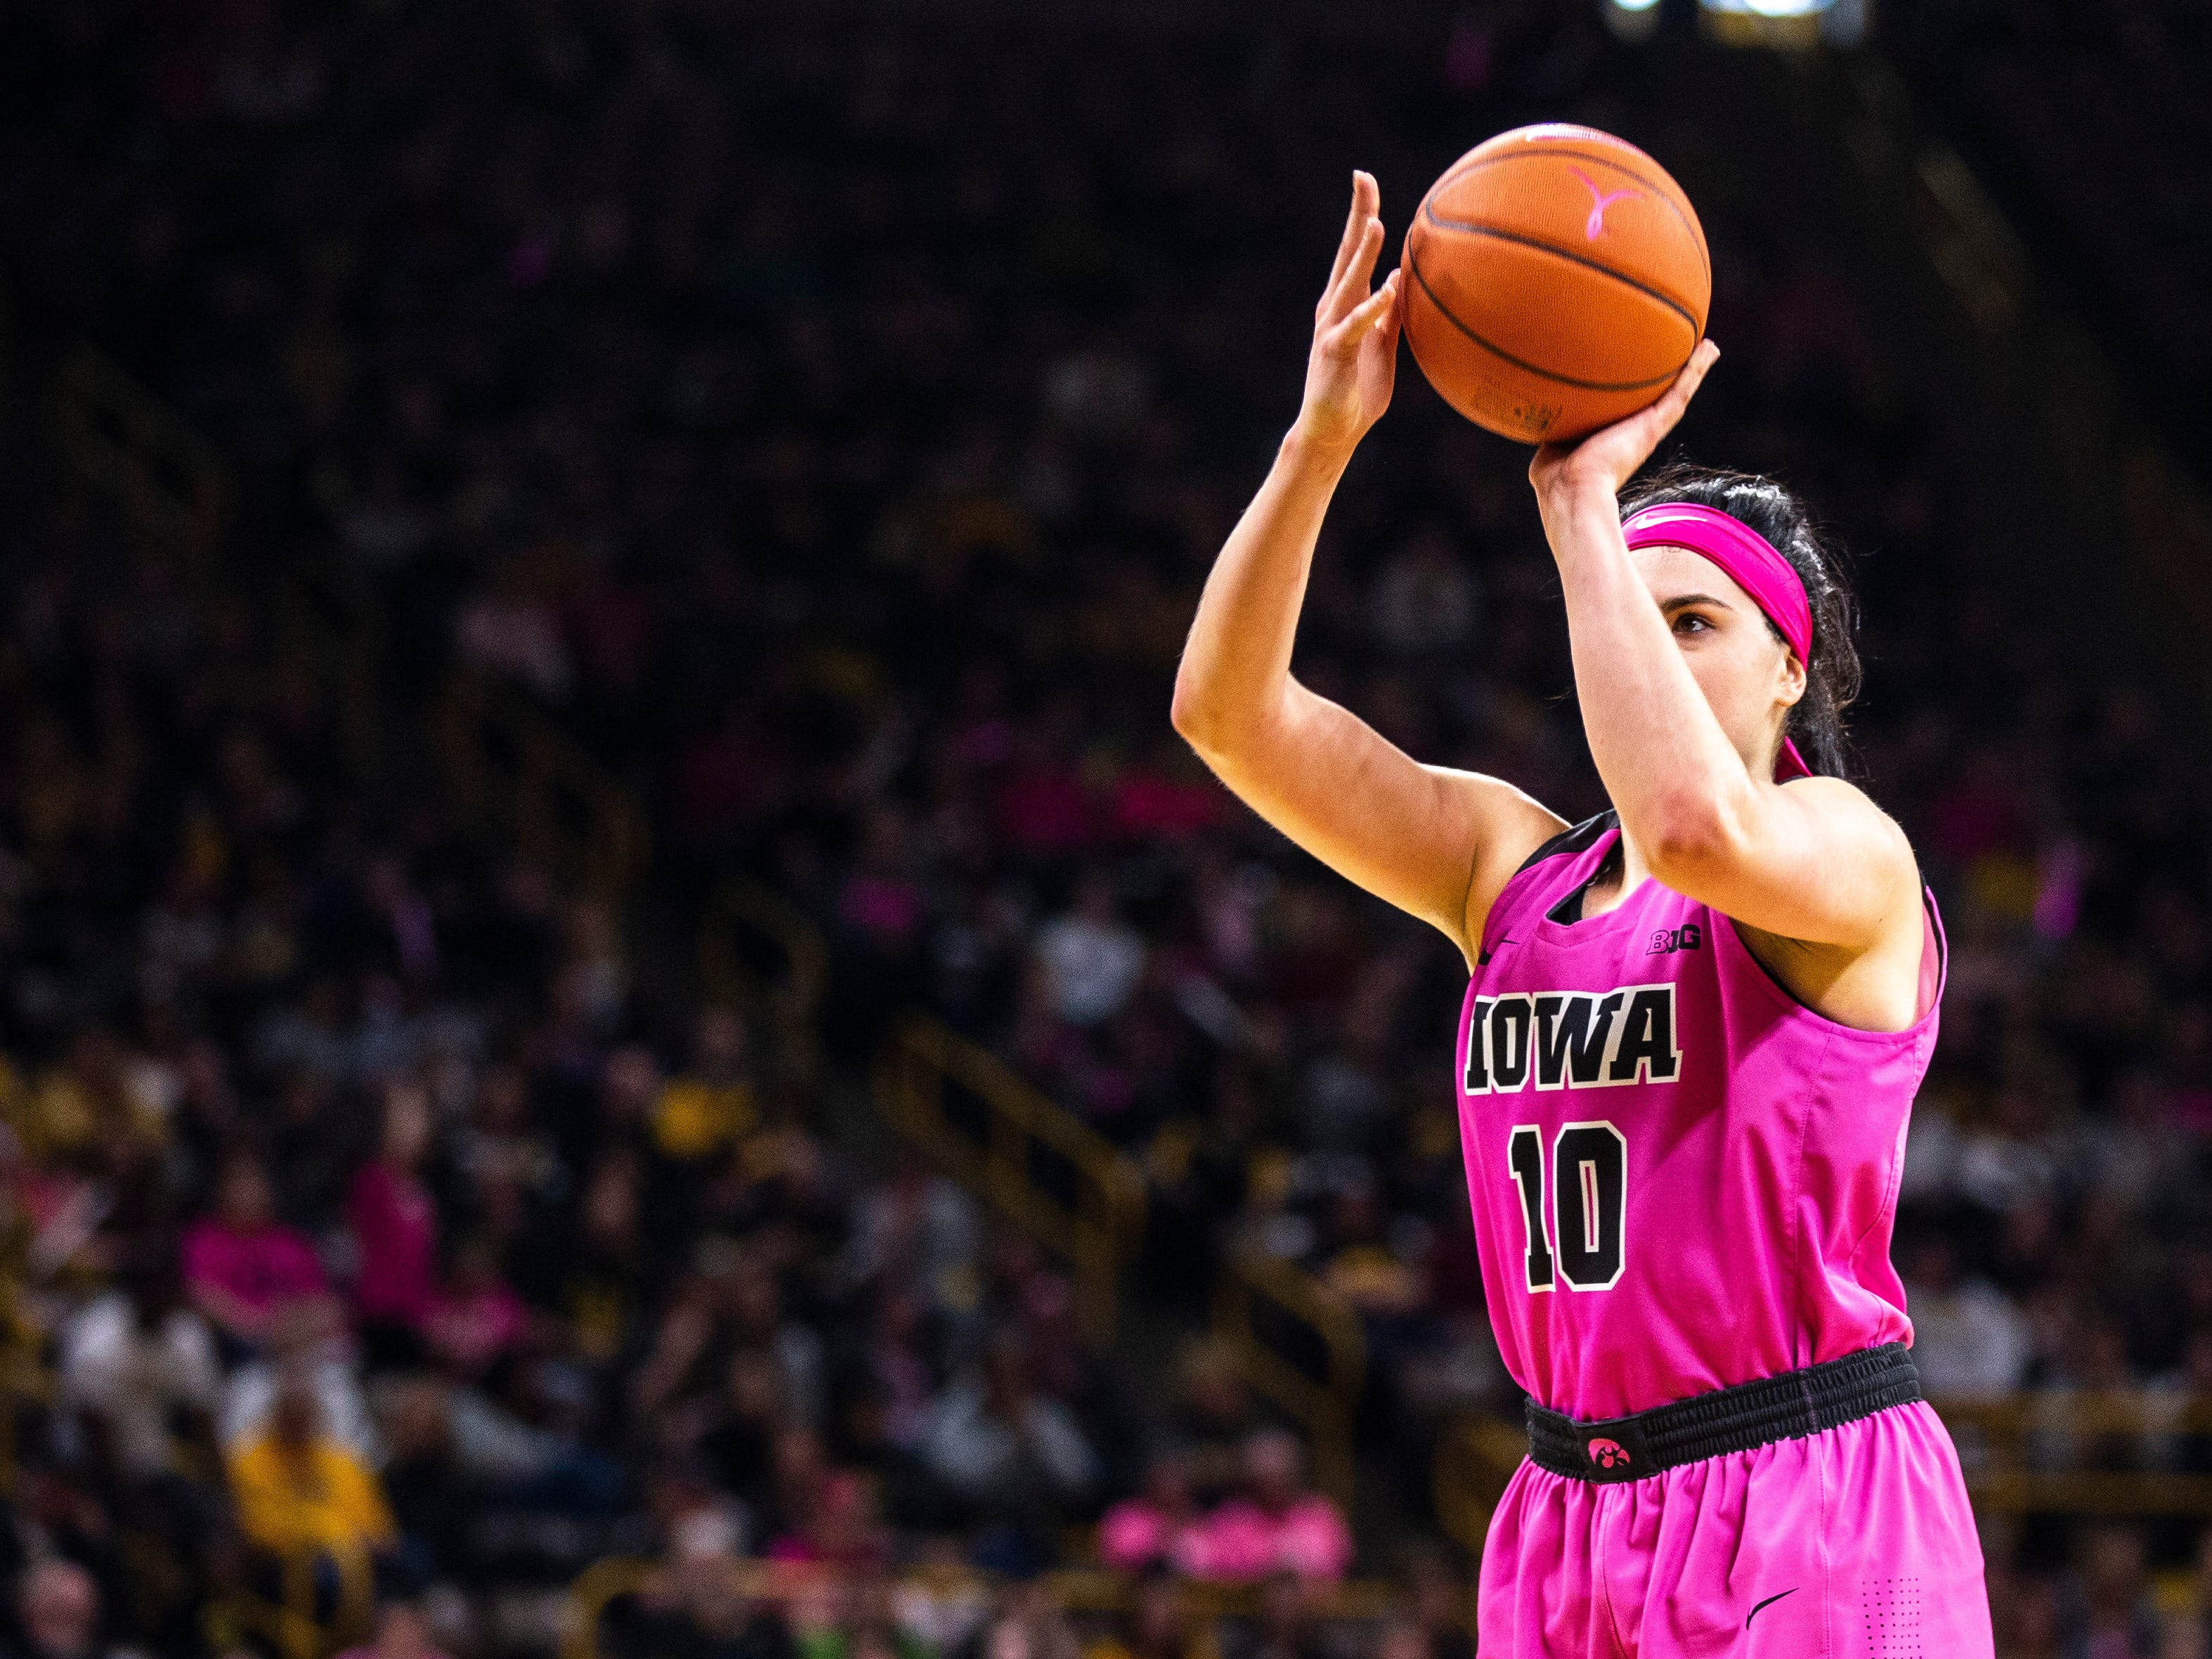 Iowa center Megan Gustafson (10) attempts a free throw during a NCAA Big Ten Conference women's basketball game on Sunday, Feb. 17, 2019 at Carver-Hawkeye Arena in Iowa City, Iowa.